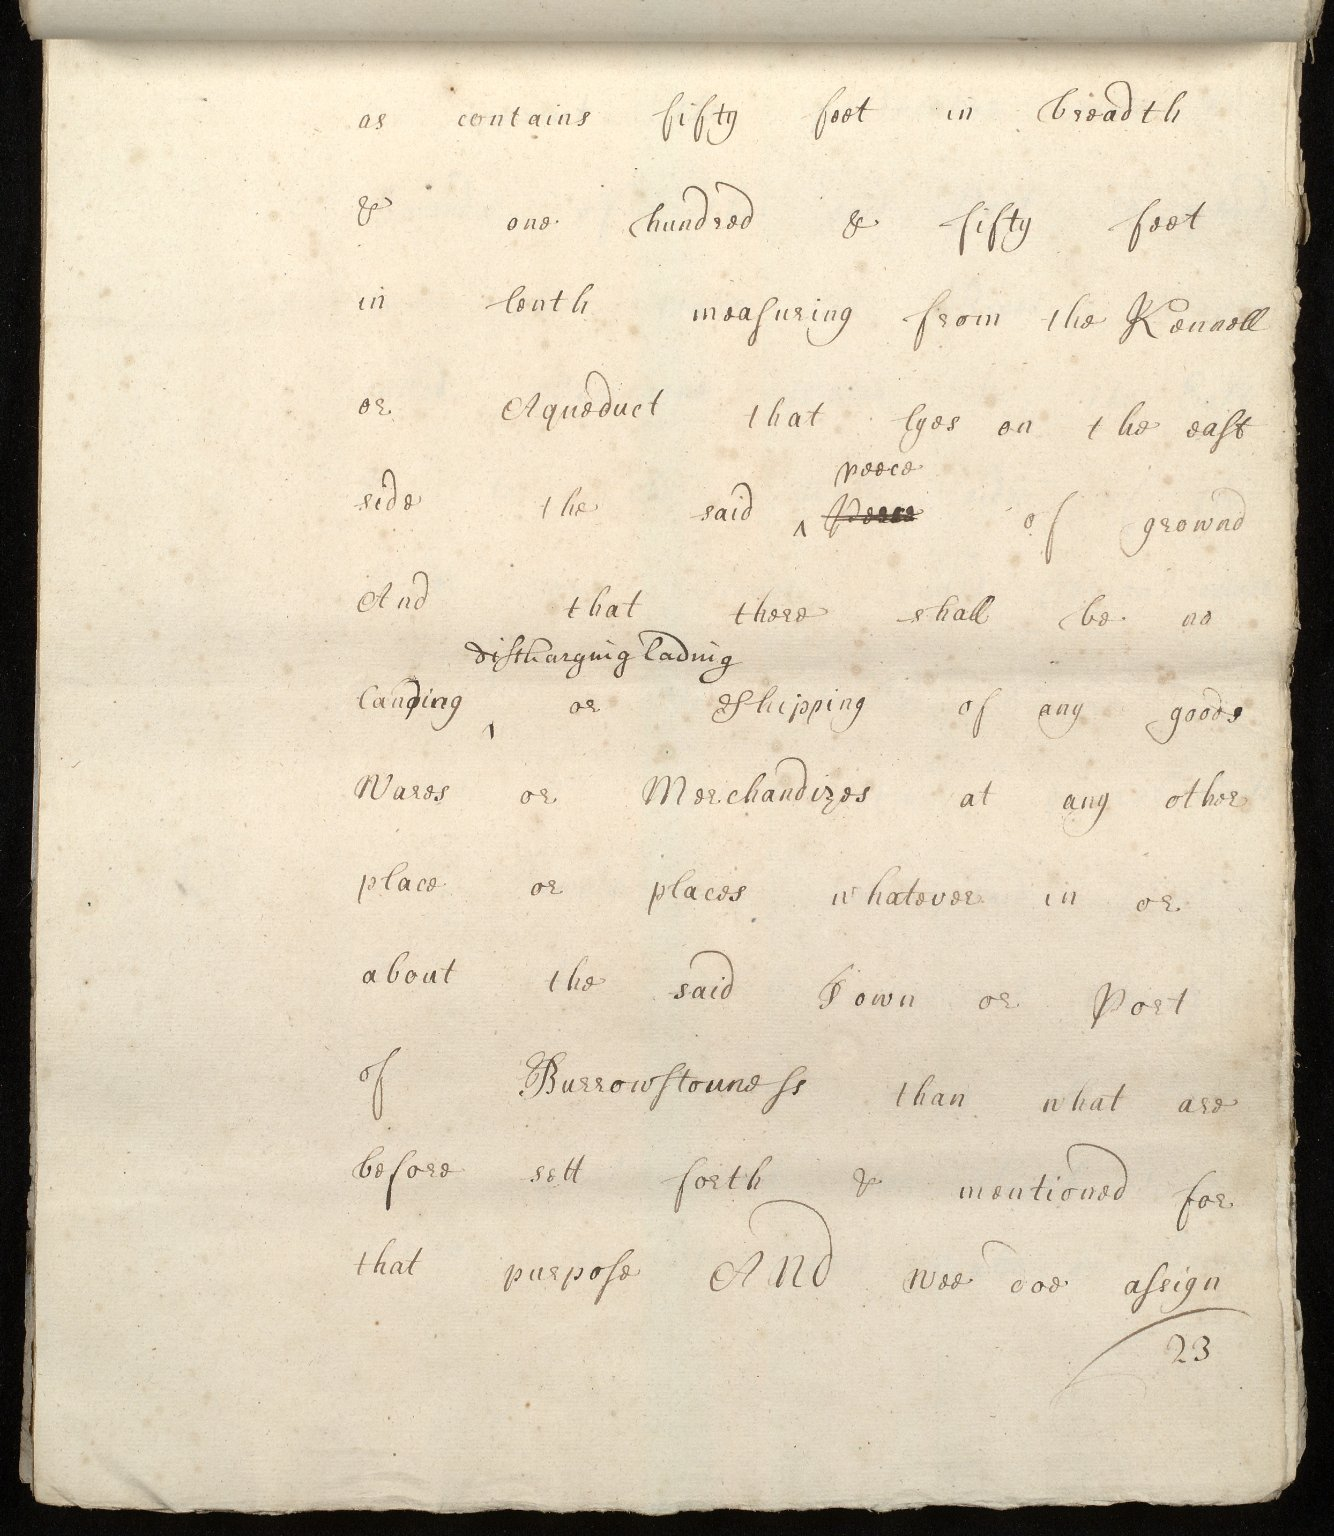 [Commission by Queen Anne to John Adair and others to appoint the town of Borrowstounness (Bo'ness) to be a port and to fix the bounds thereof] [23 of 39]